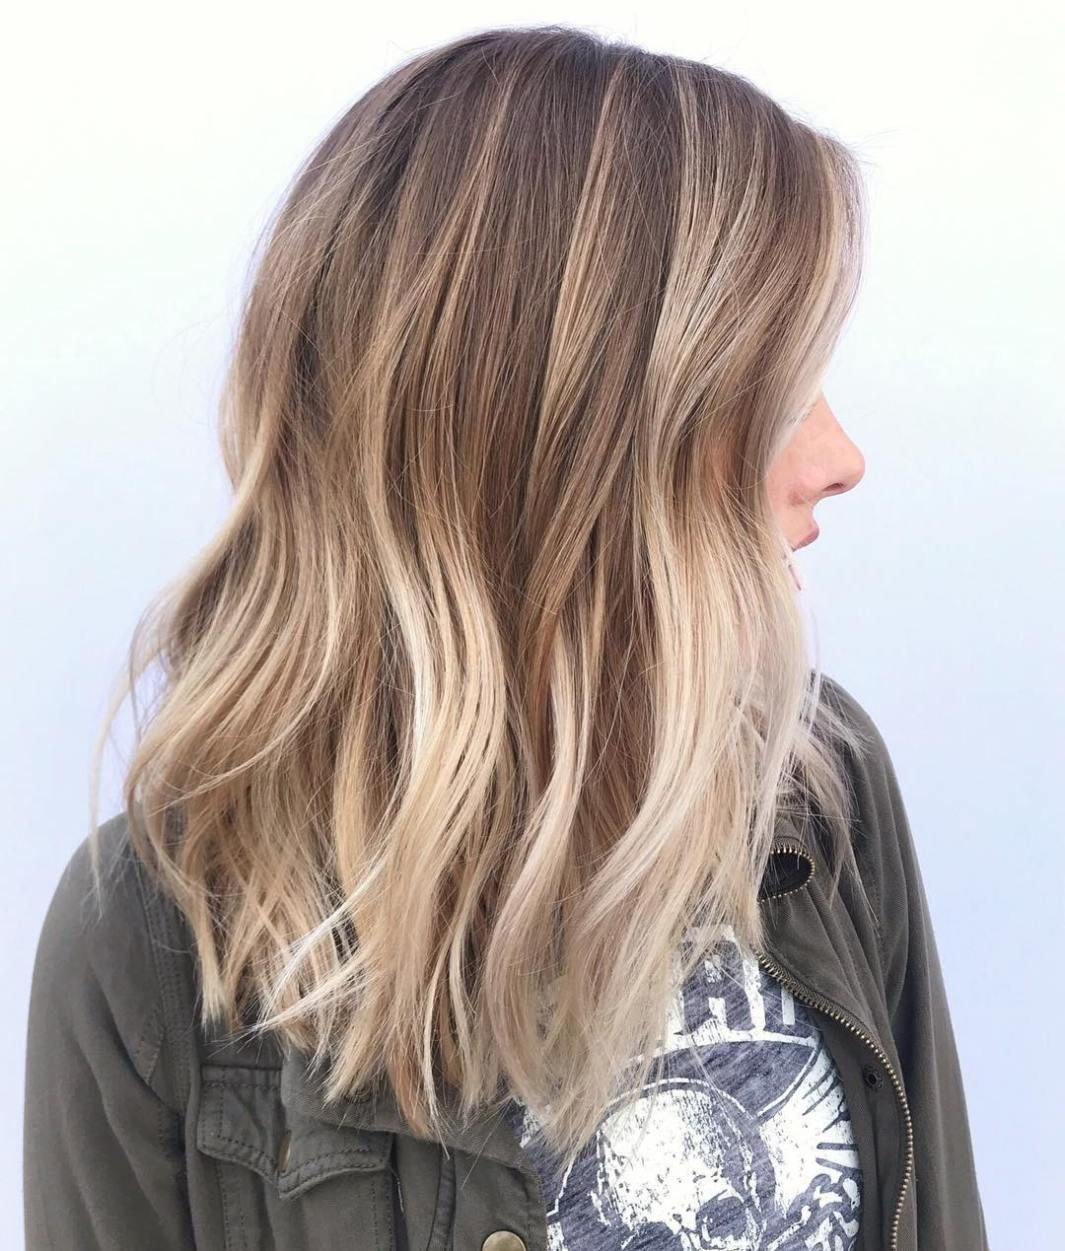 50 Ideas For Light Brown Hair With Highlights And Lowlights Brown Hair With Highlights And Lowlights Brown Hair With Highlights Light Brown Hair